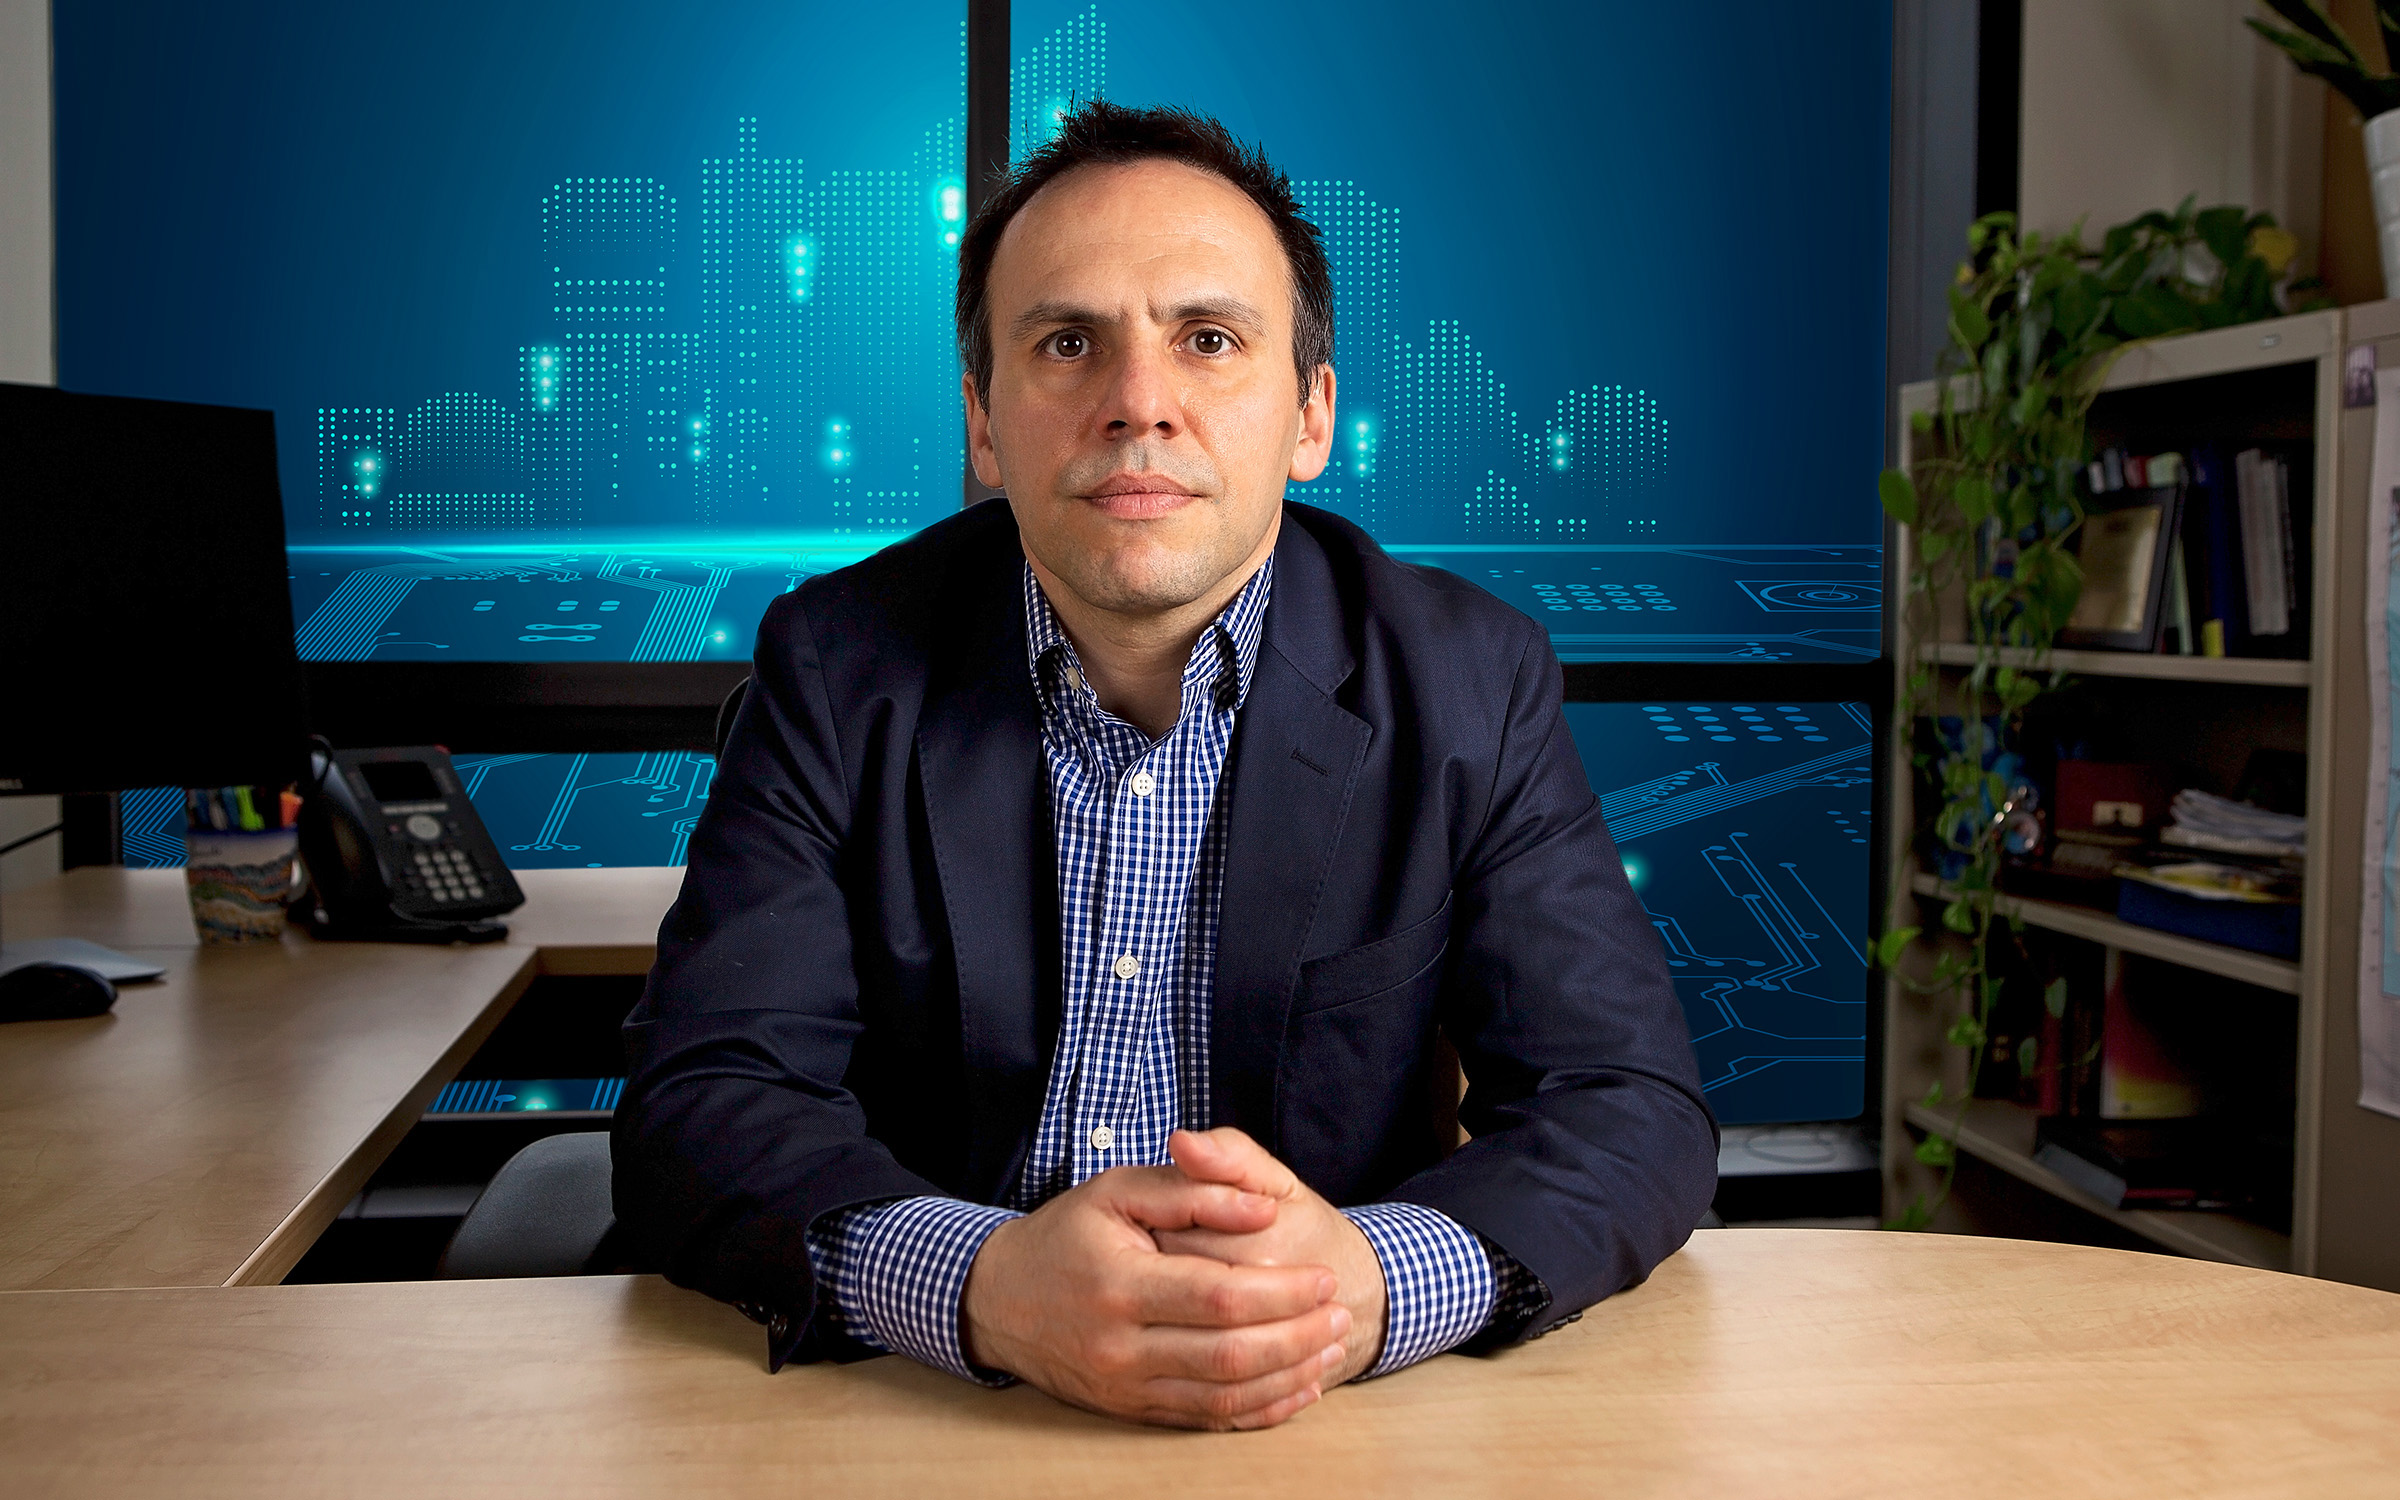 Vassilis Kekatos Receives Award to Diagnose Power Grid